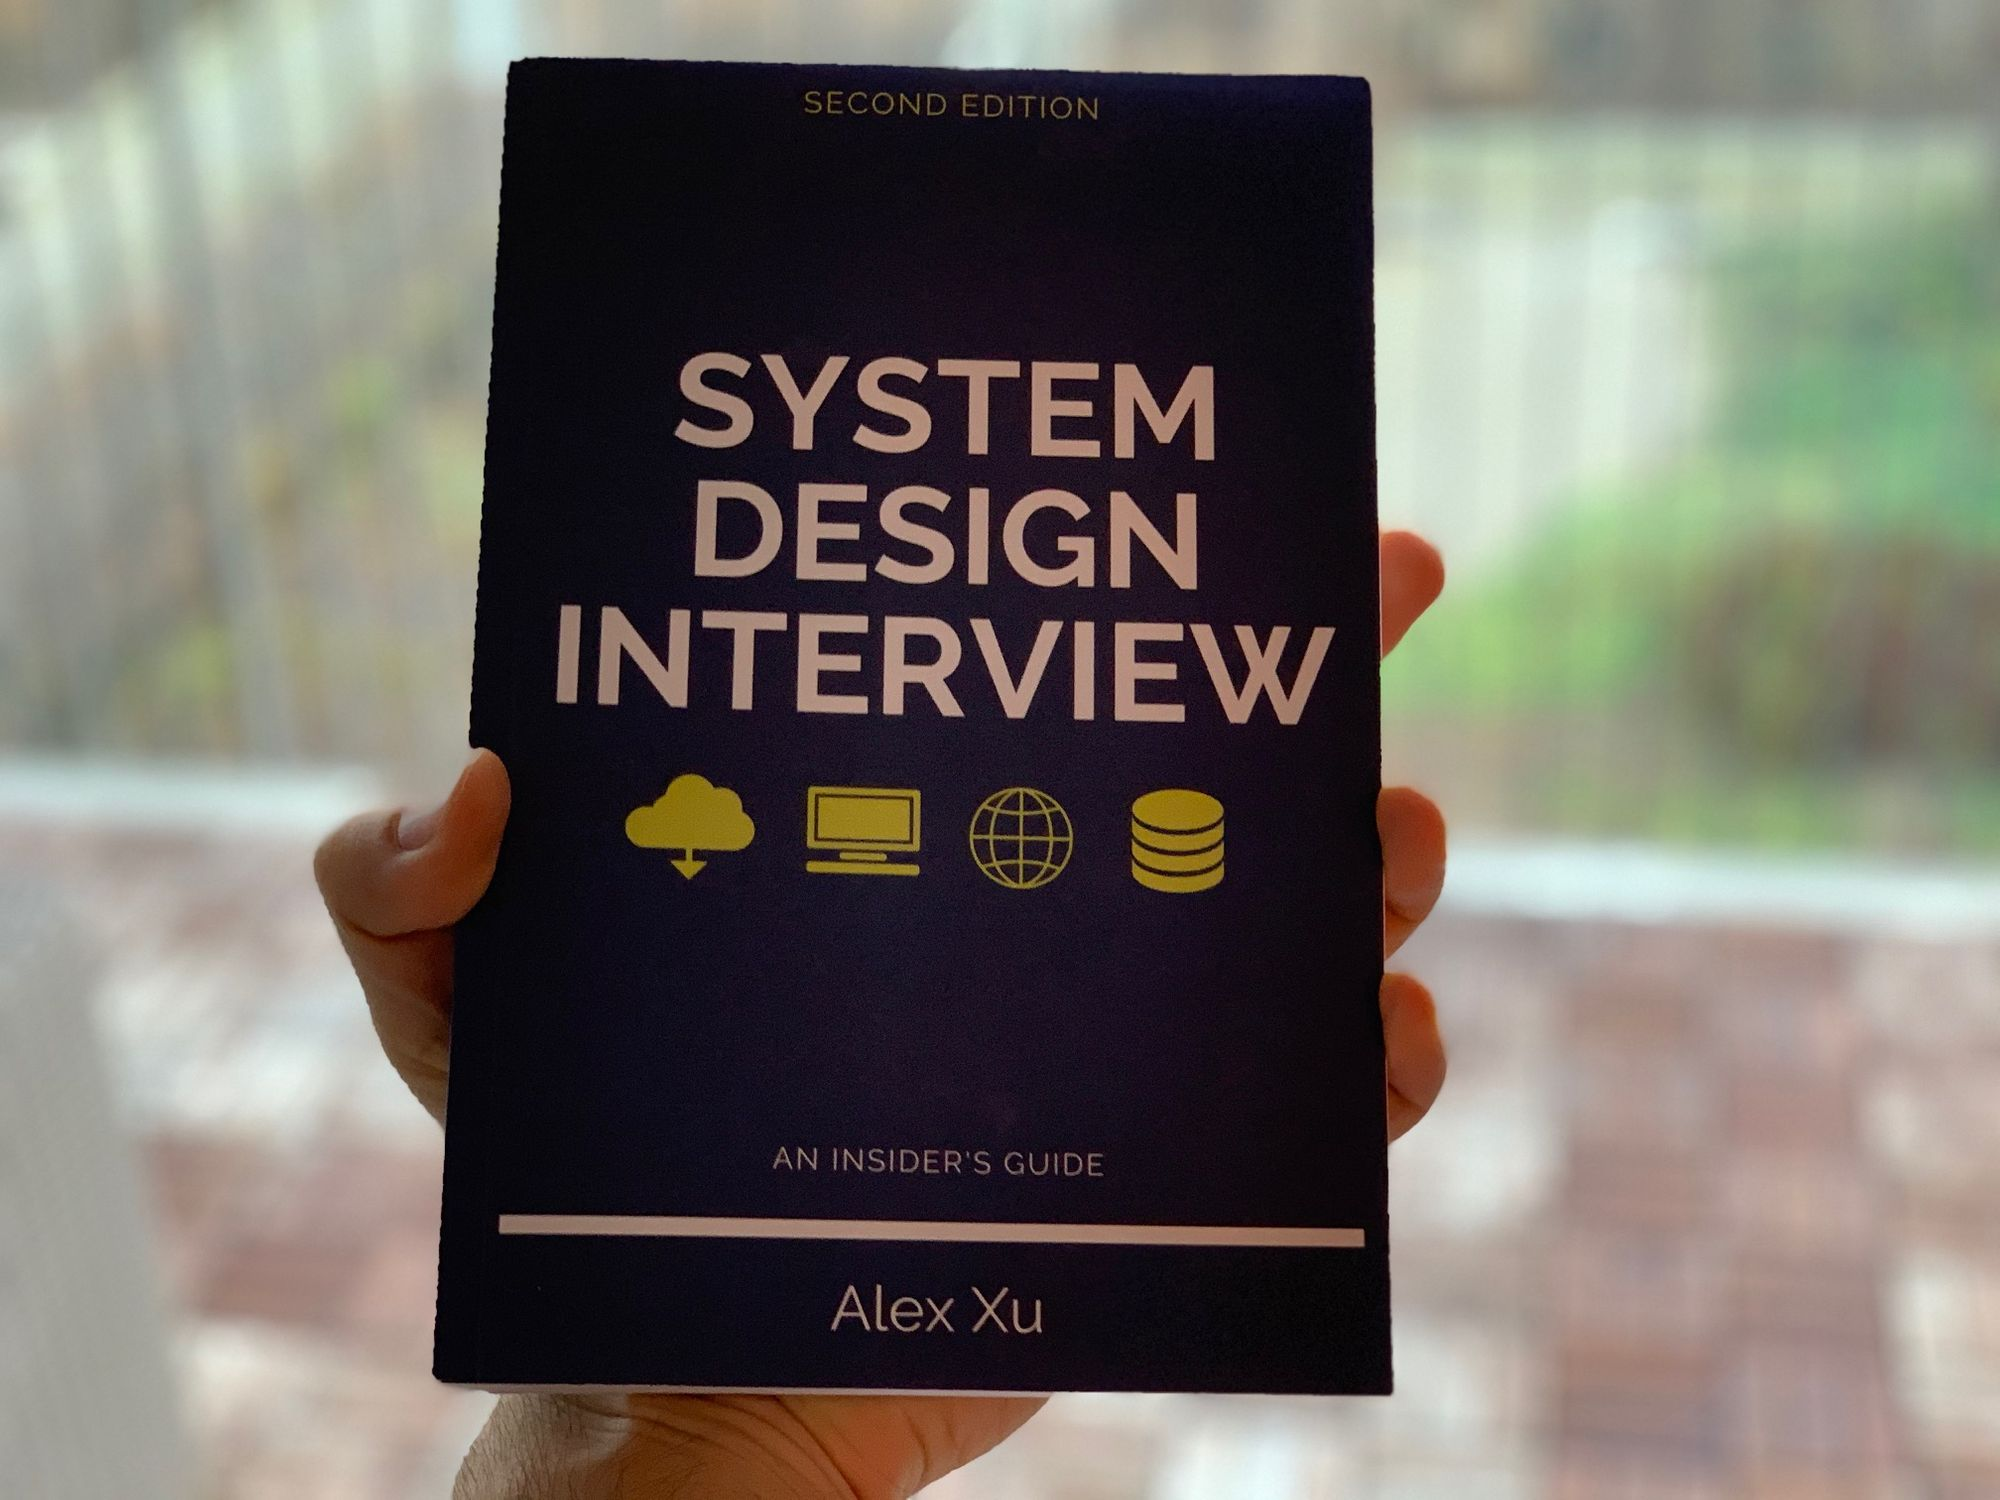 System Design Interview Book Review: Finally, a Book for Getting Better at Architecting Systems